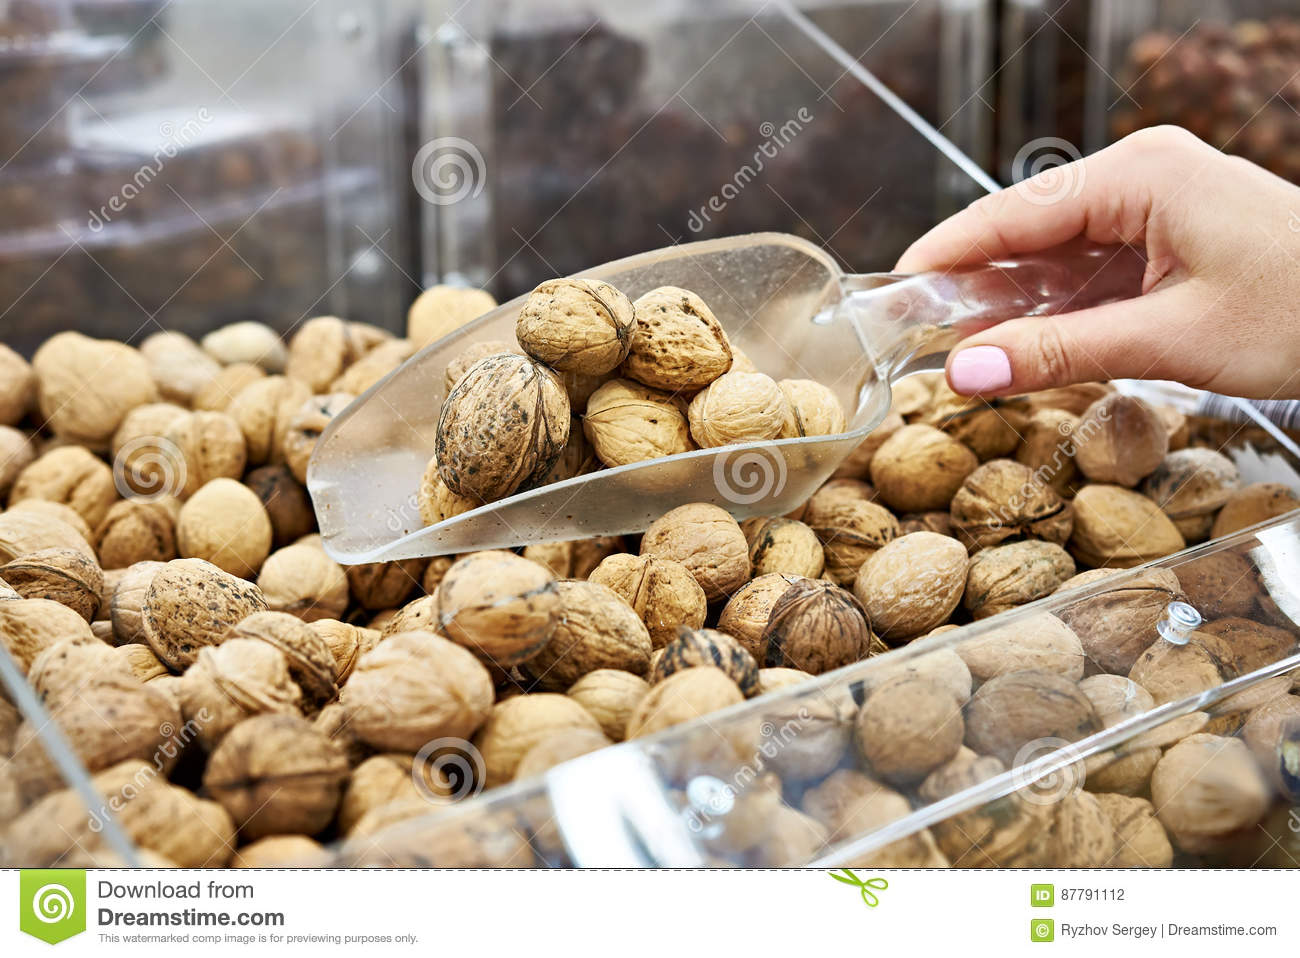 How to store walnuts